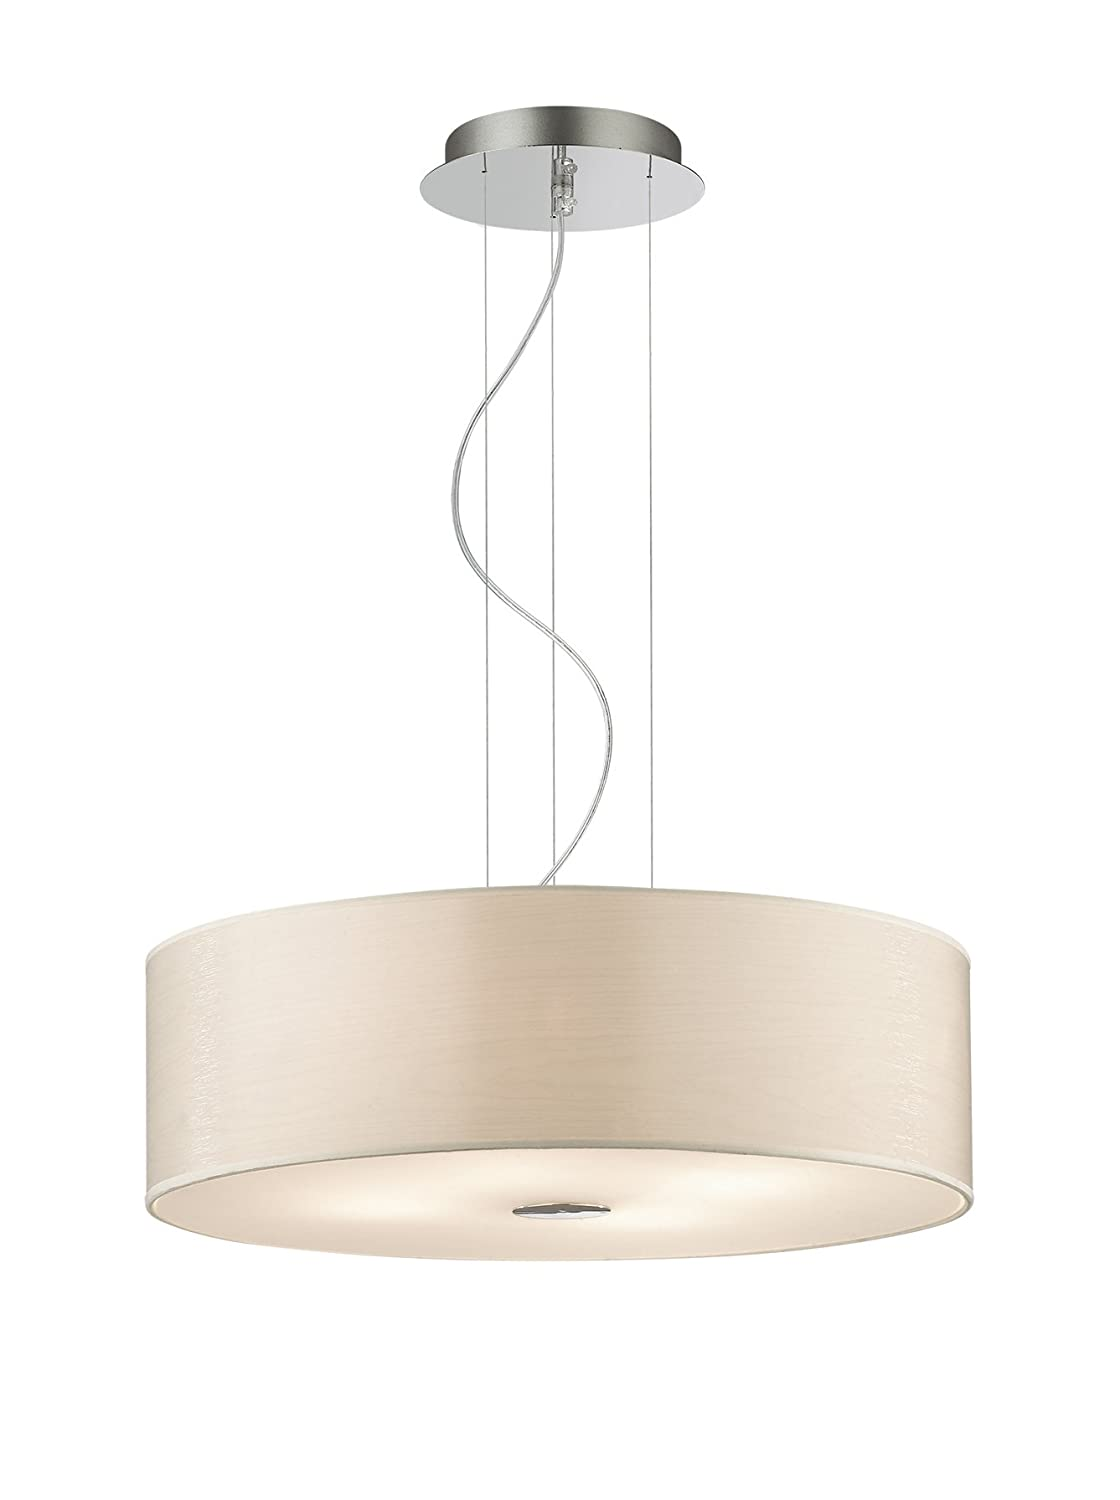 Ideal Lux Woody SP4 Lampada, Betulla: Amazon.it: Illuminazione